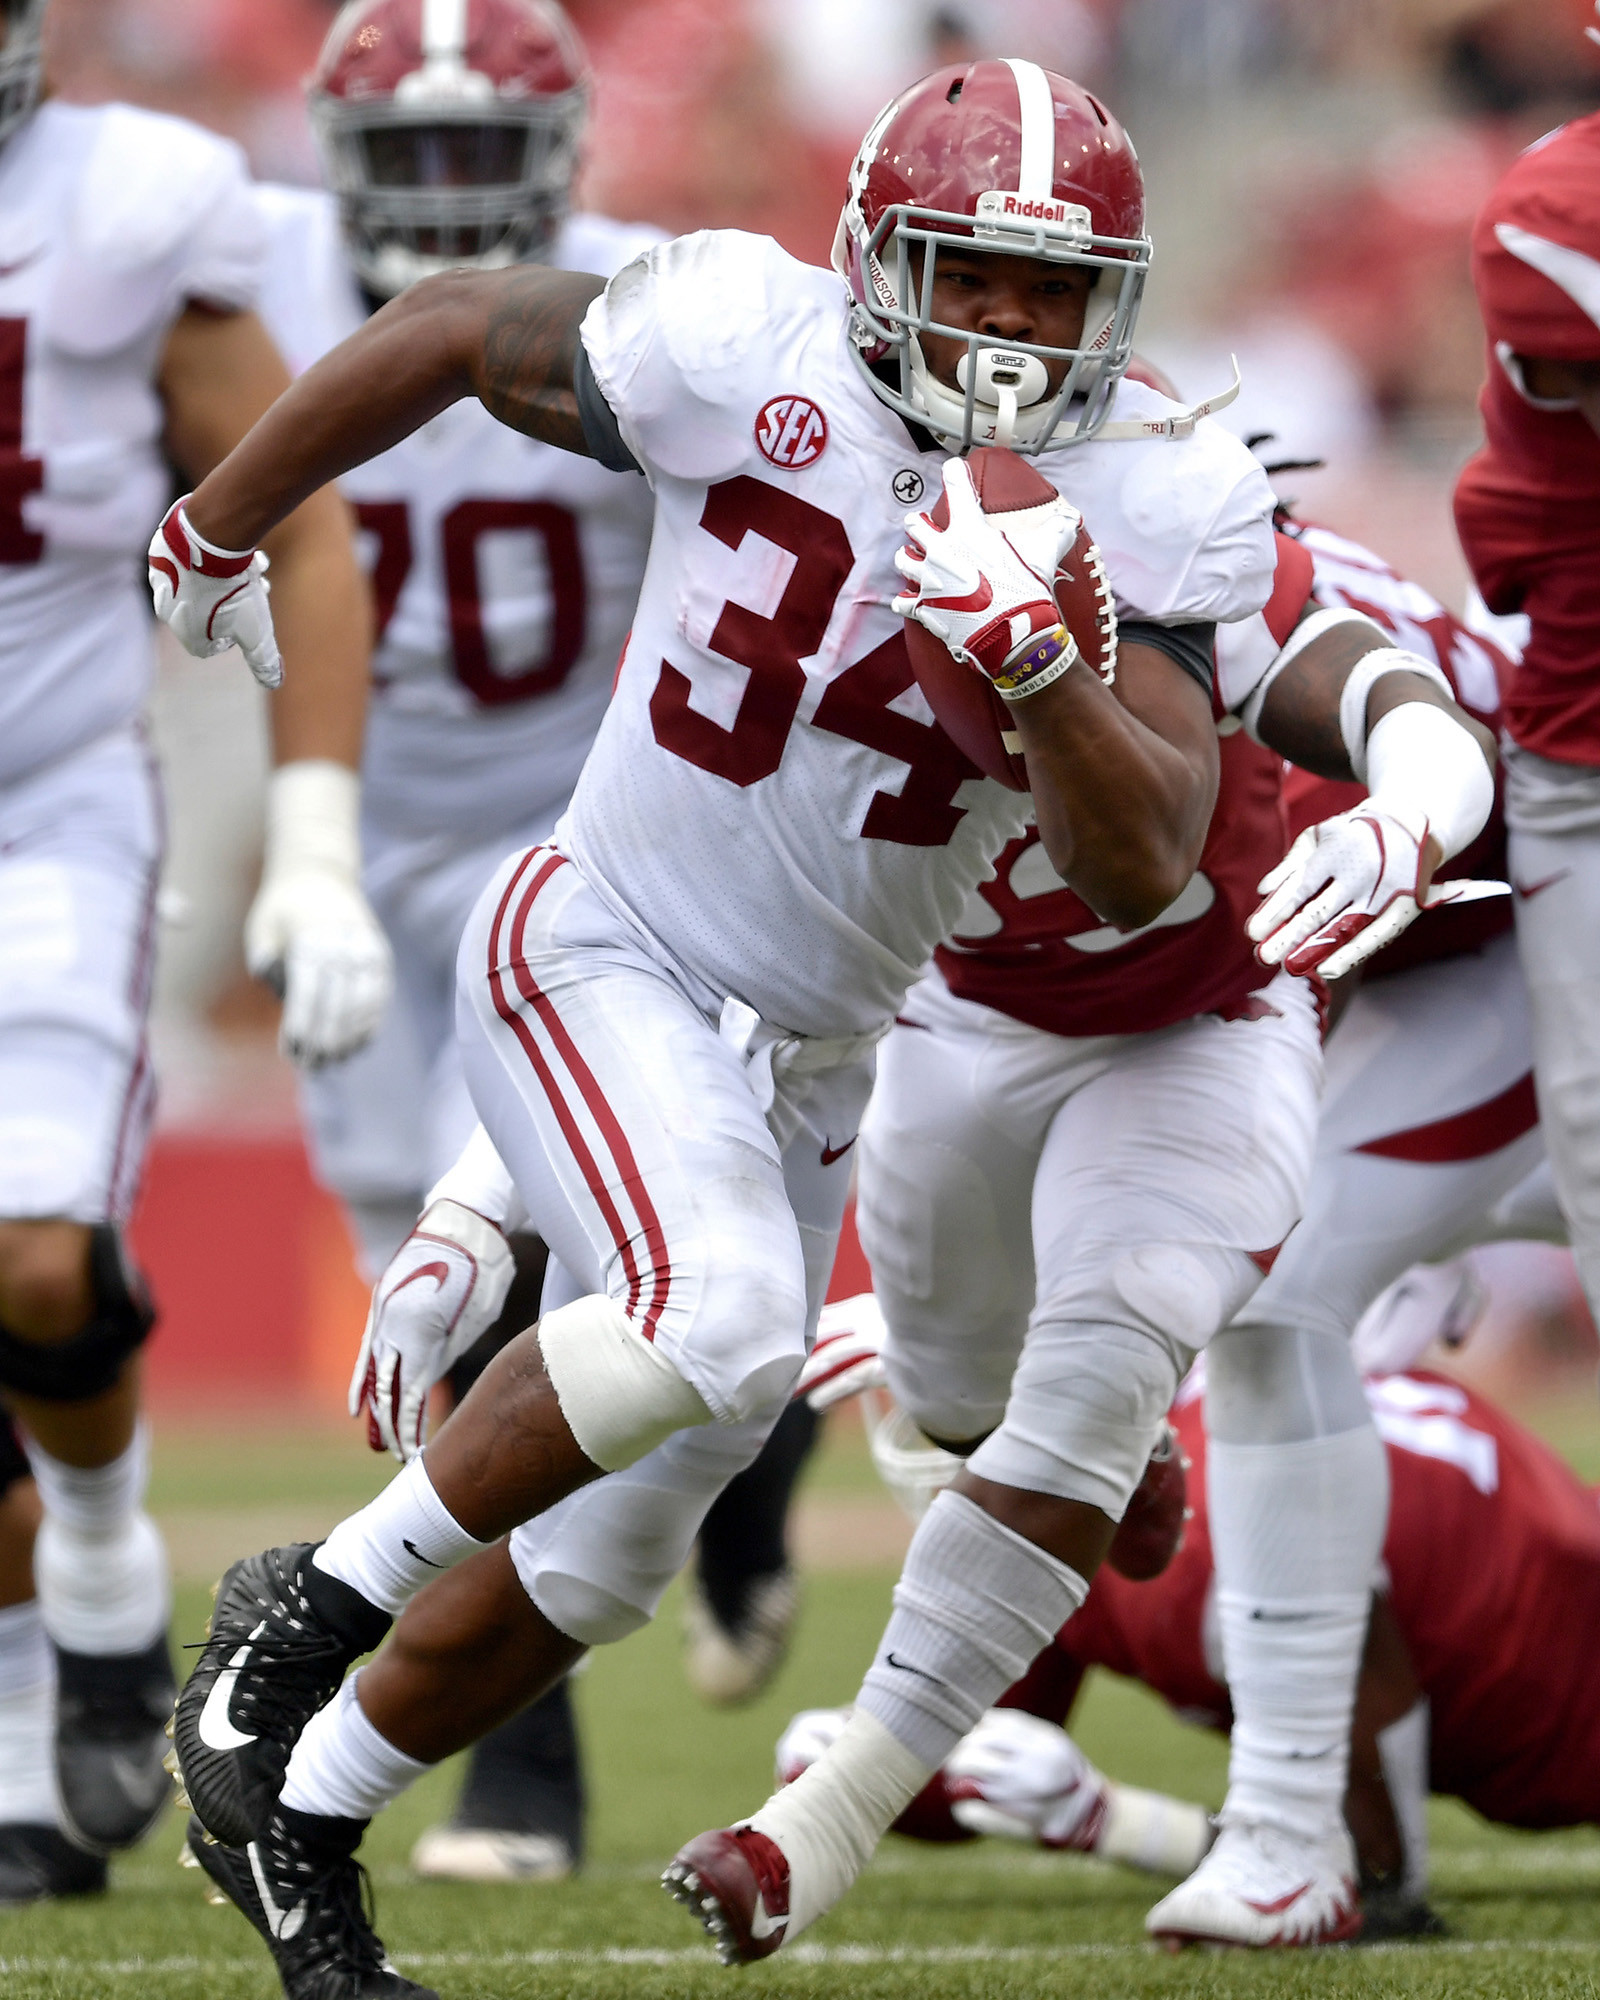 Alabama Crimson Tide running back Damien Harris (34) finds some running room in the second half of the NCAA football game against the Arkansas Razorbacks at Razorback Stadium on Oct. 6, 2018, in Fayetteville, Ark. Alabama defeated Arkansas 65-31. (Photo by Lee Walls) . Alabama defeated Arkansas 65-31. (Photo by Lee Walls)